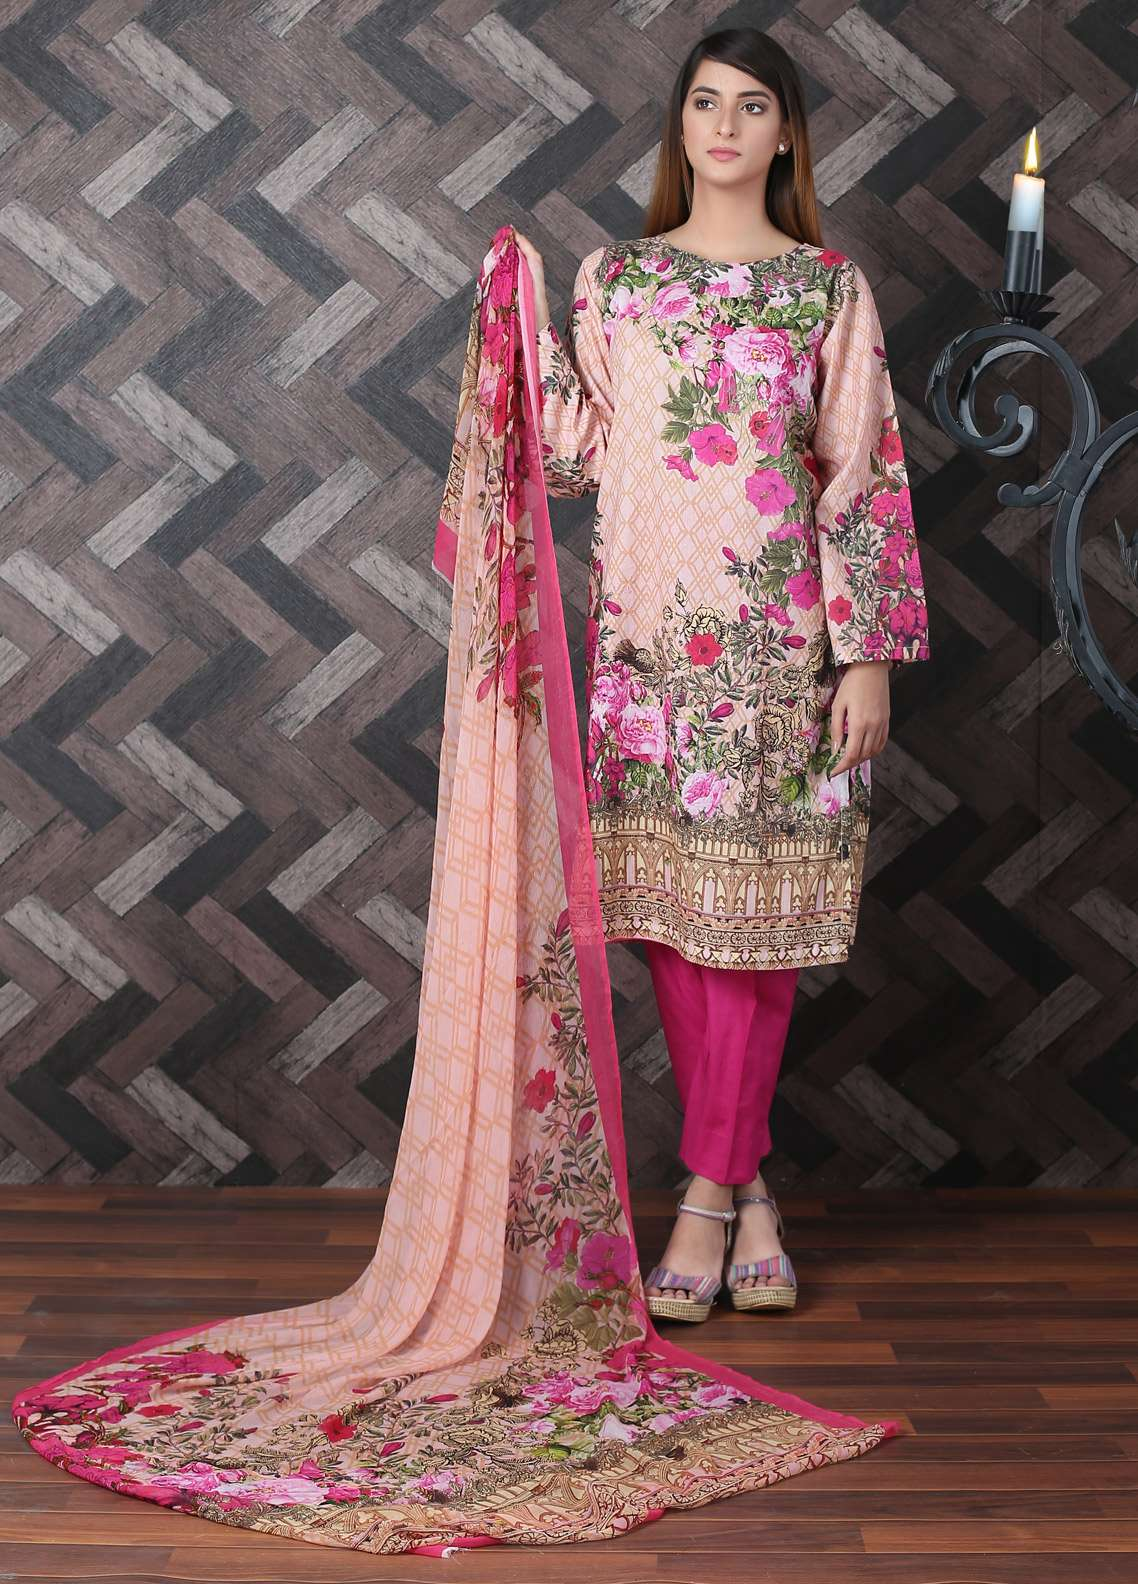 Waniya Printed Lawn Unstitched 2 Piece Suit UNS-178 - Spring / Summer Collection